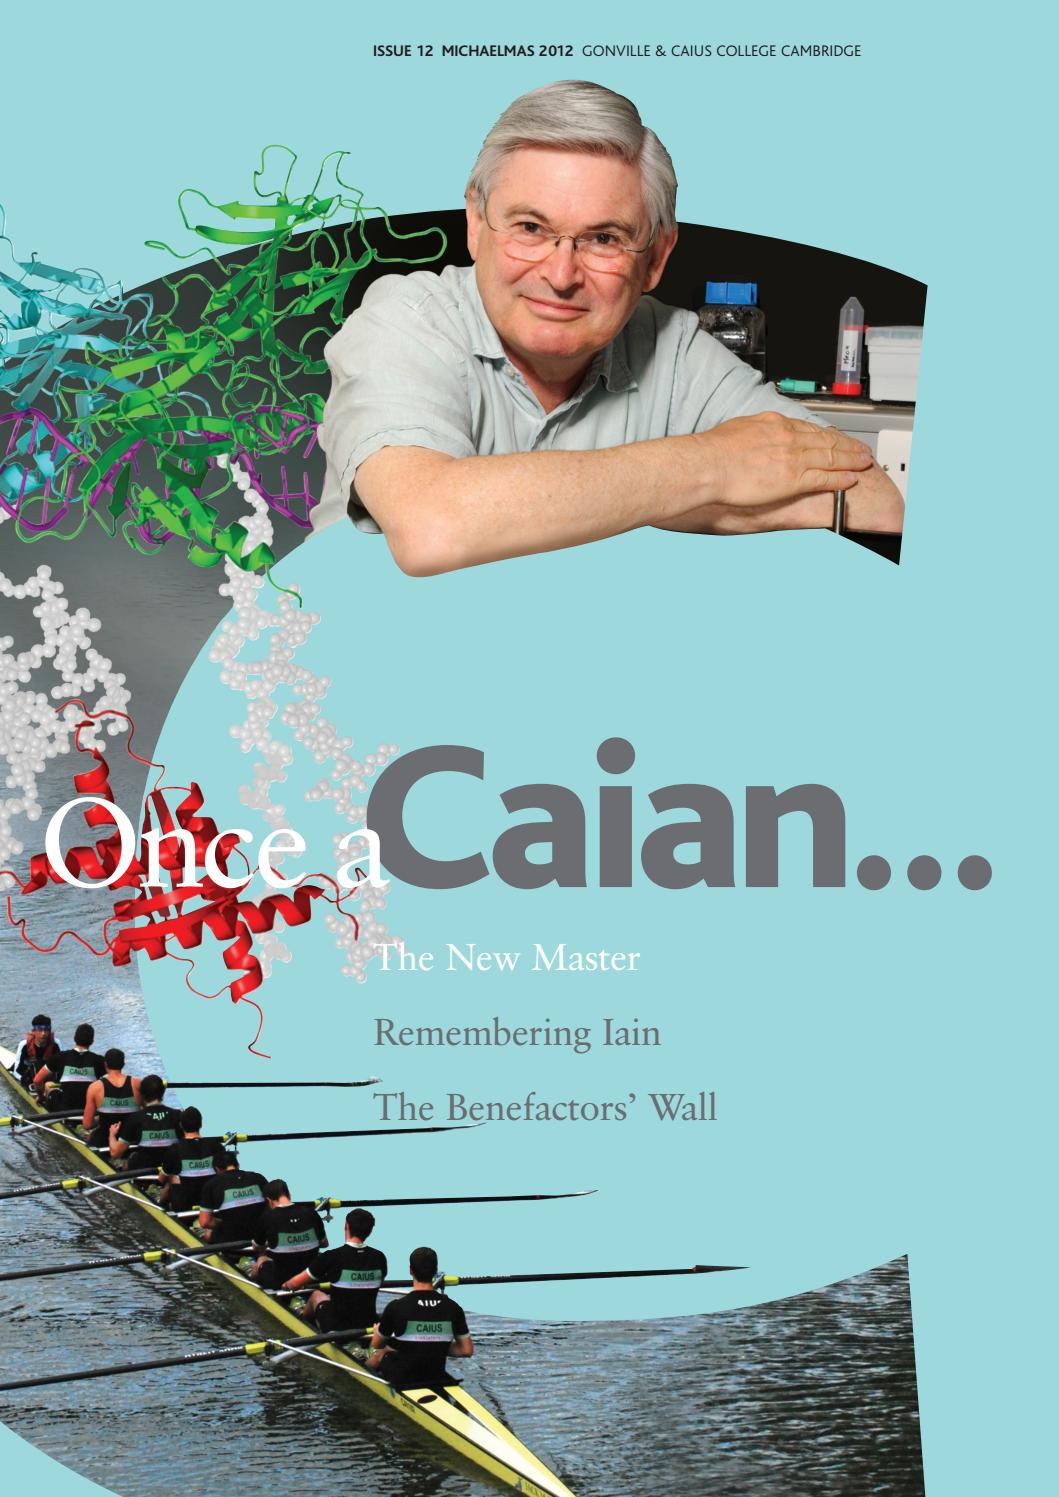 Once A Caian Issue 12 By Gonville Caius College Issuu